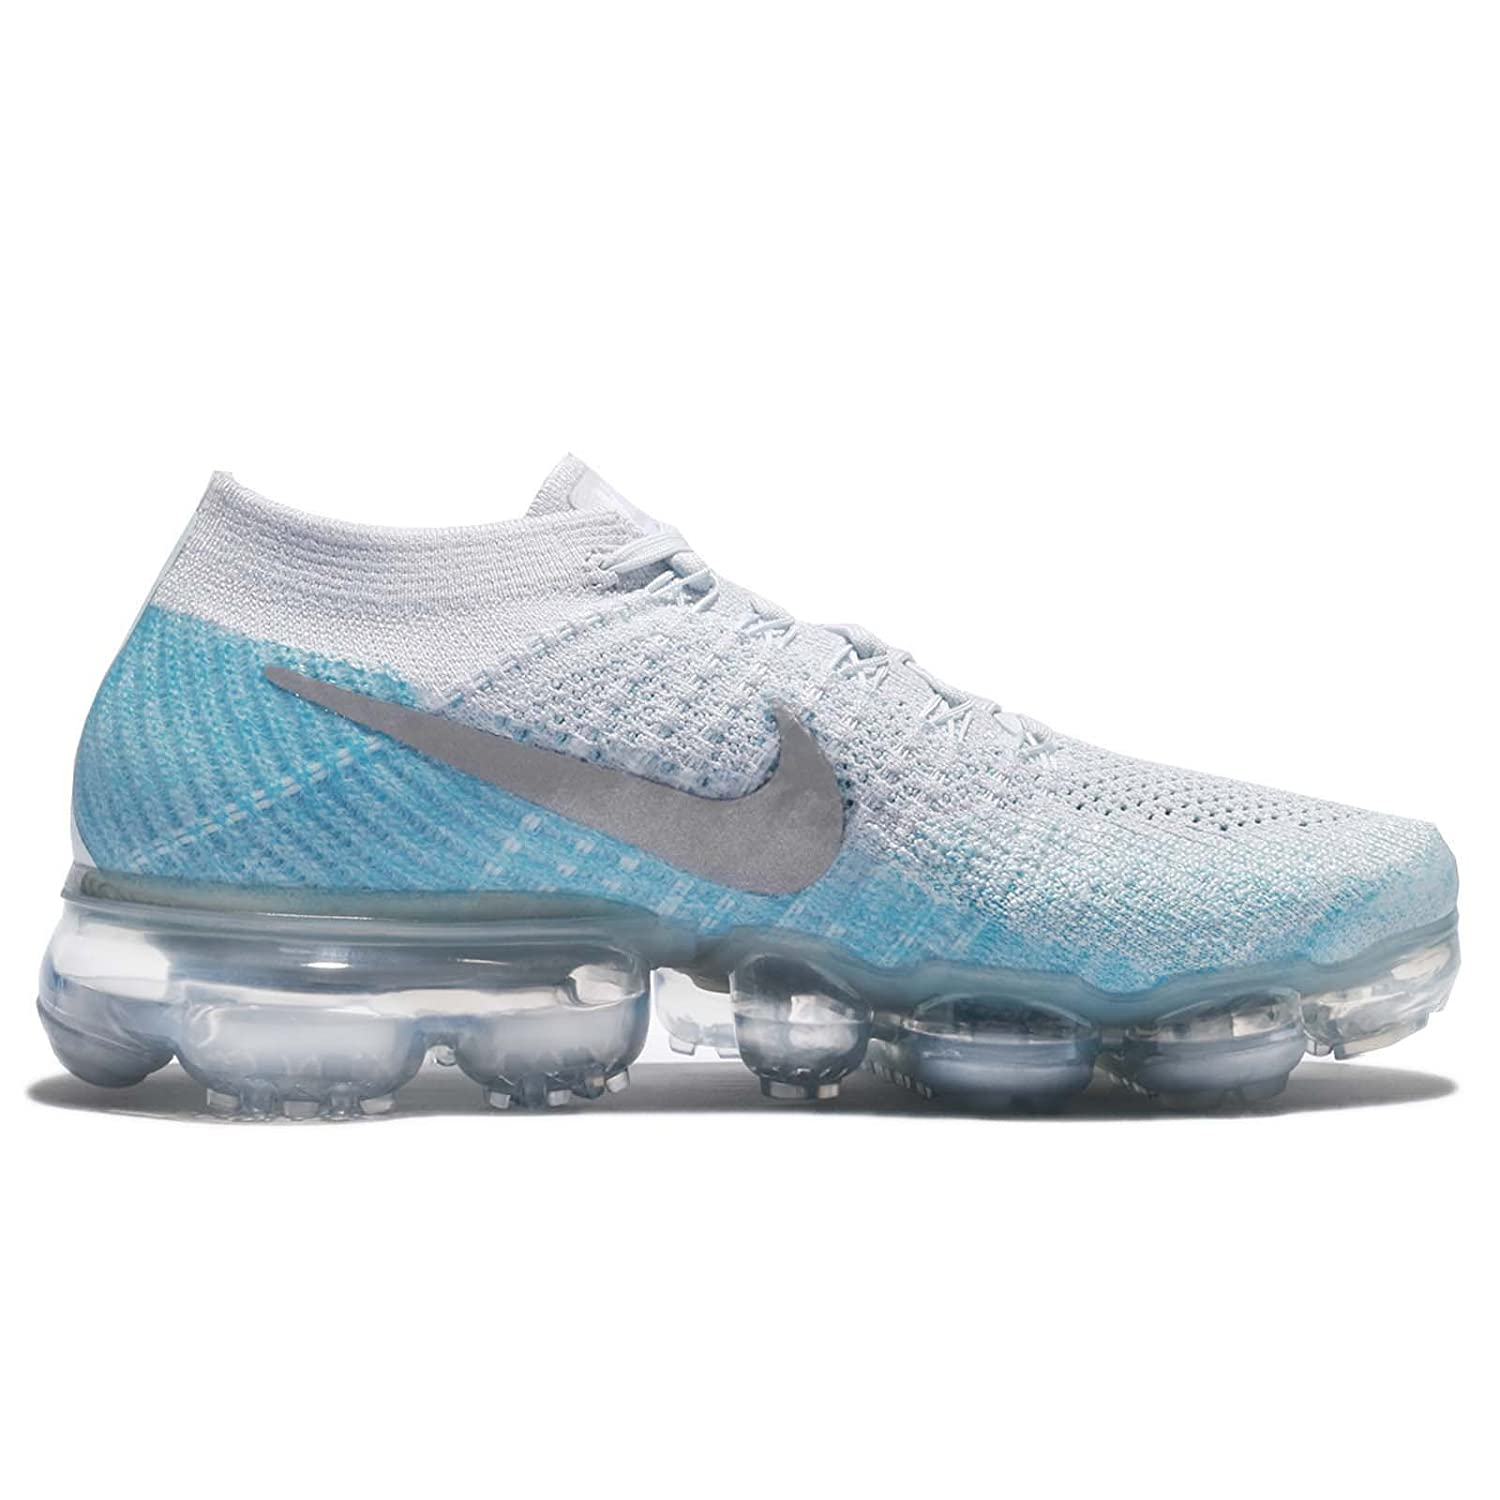 Amazon.com | Nike WMNS Air Vapormax Flyknit Ice Flash 849557-014 Platinum/Blue Womens Running Shoes | Running